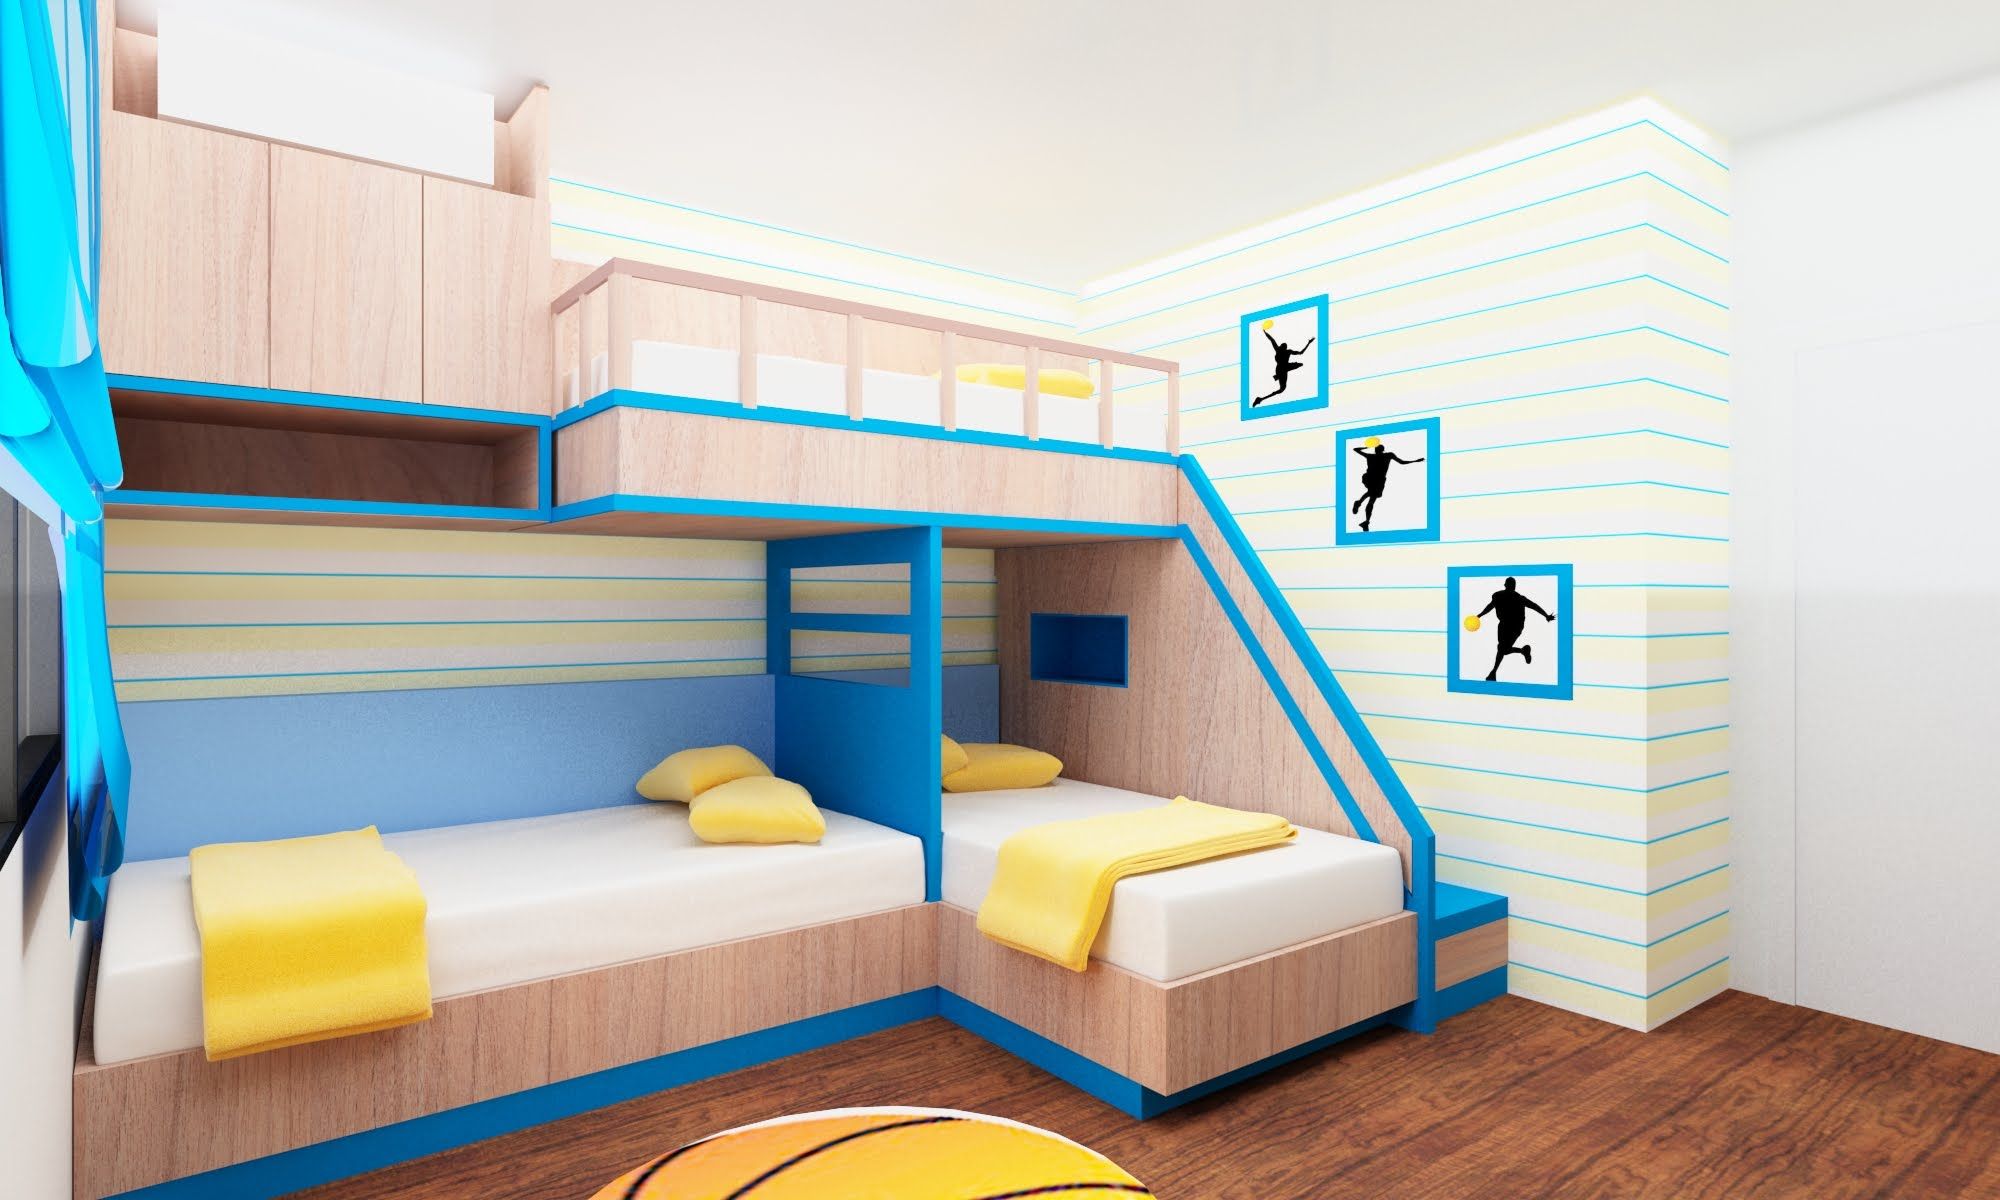 Trendy childrens bunk beds children bunk beds | toddler bunk bed dimensions - youtube fuespae